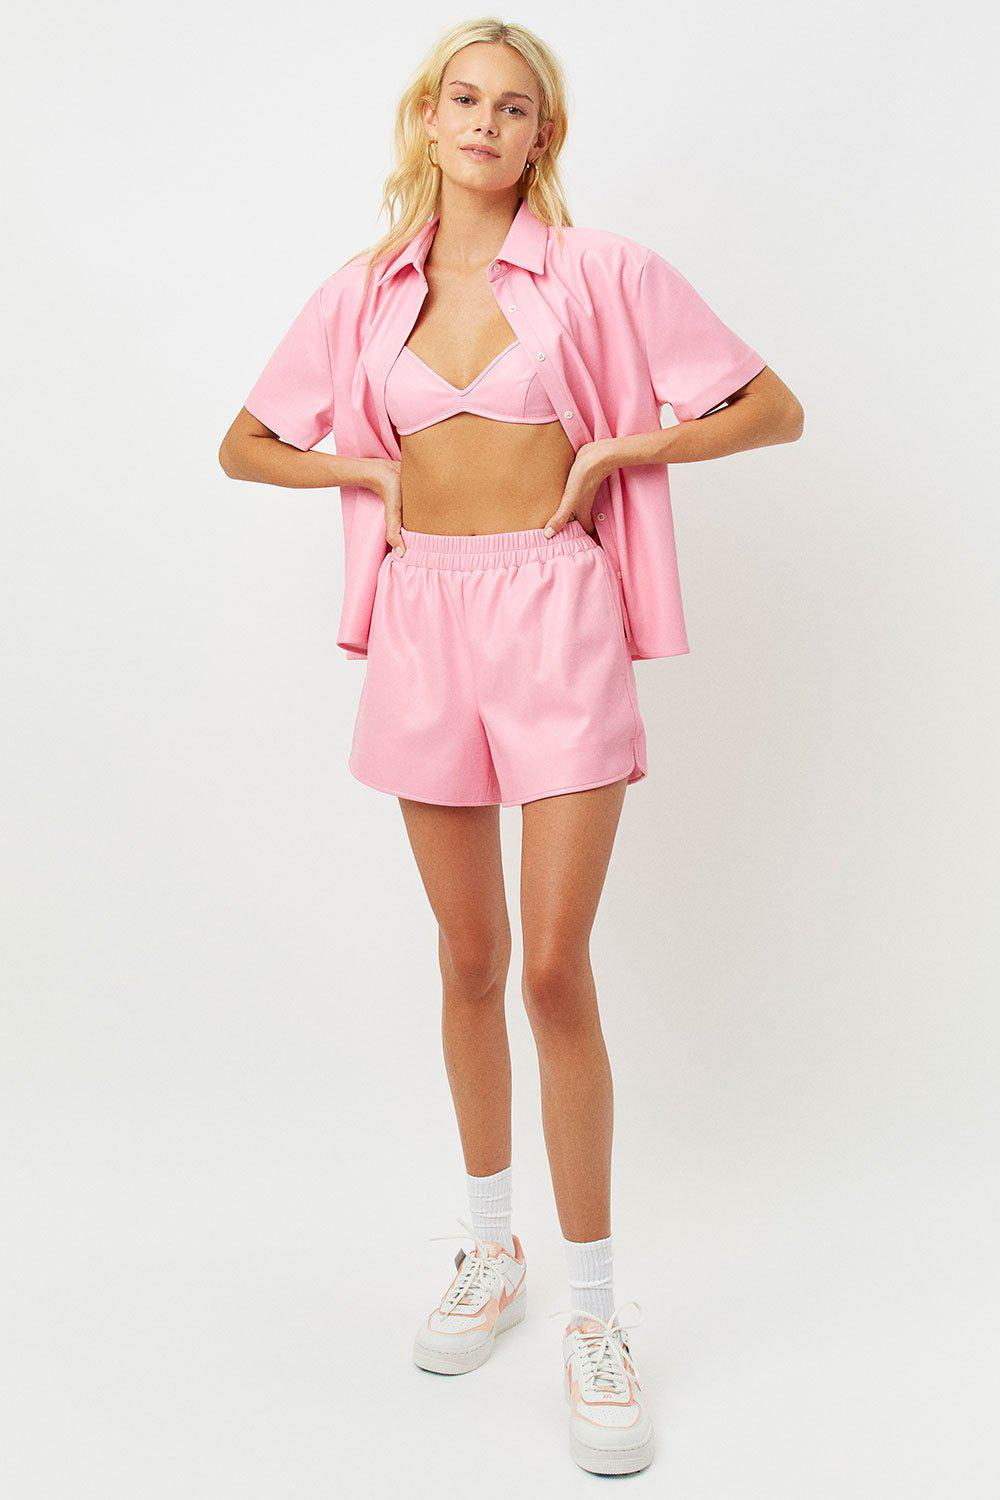 Rusty Vegan Leather Button Up Shirt - Pink Punch 2